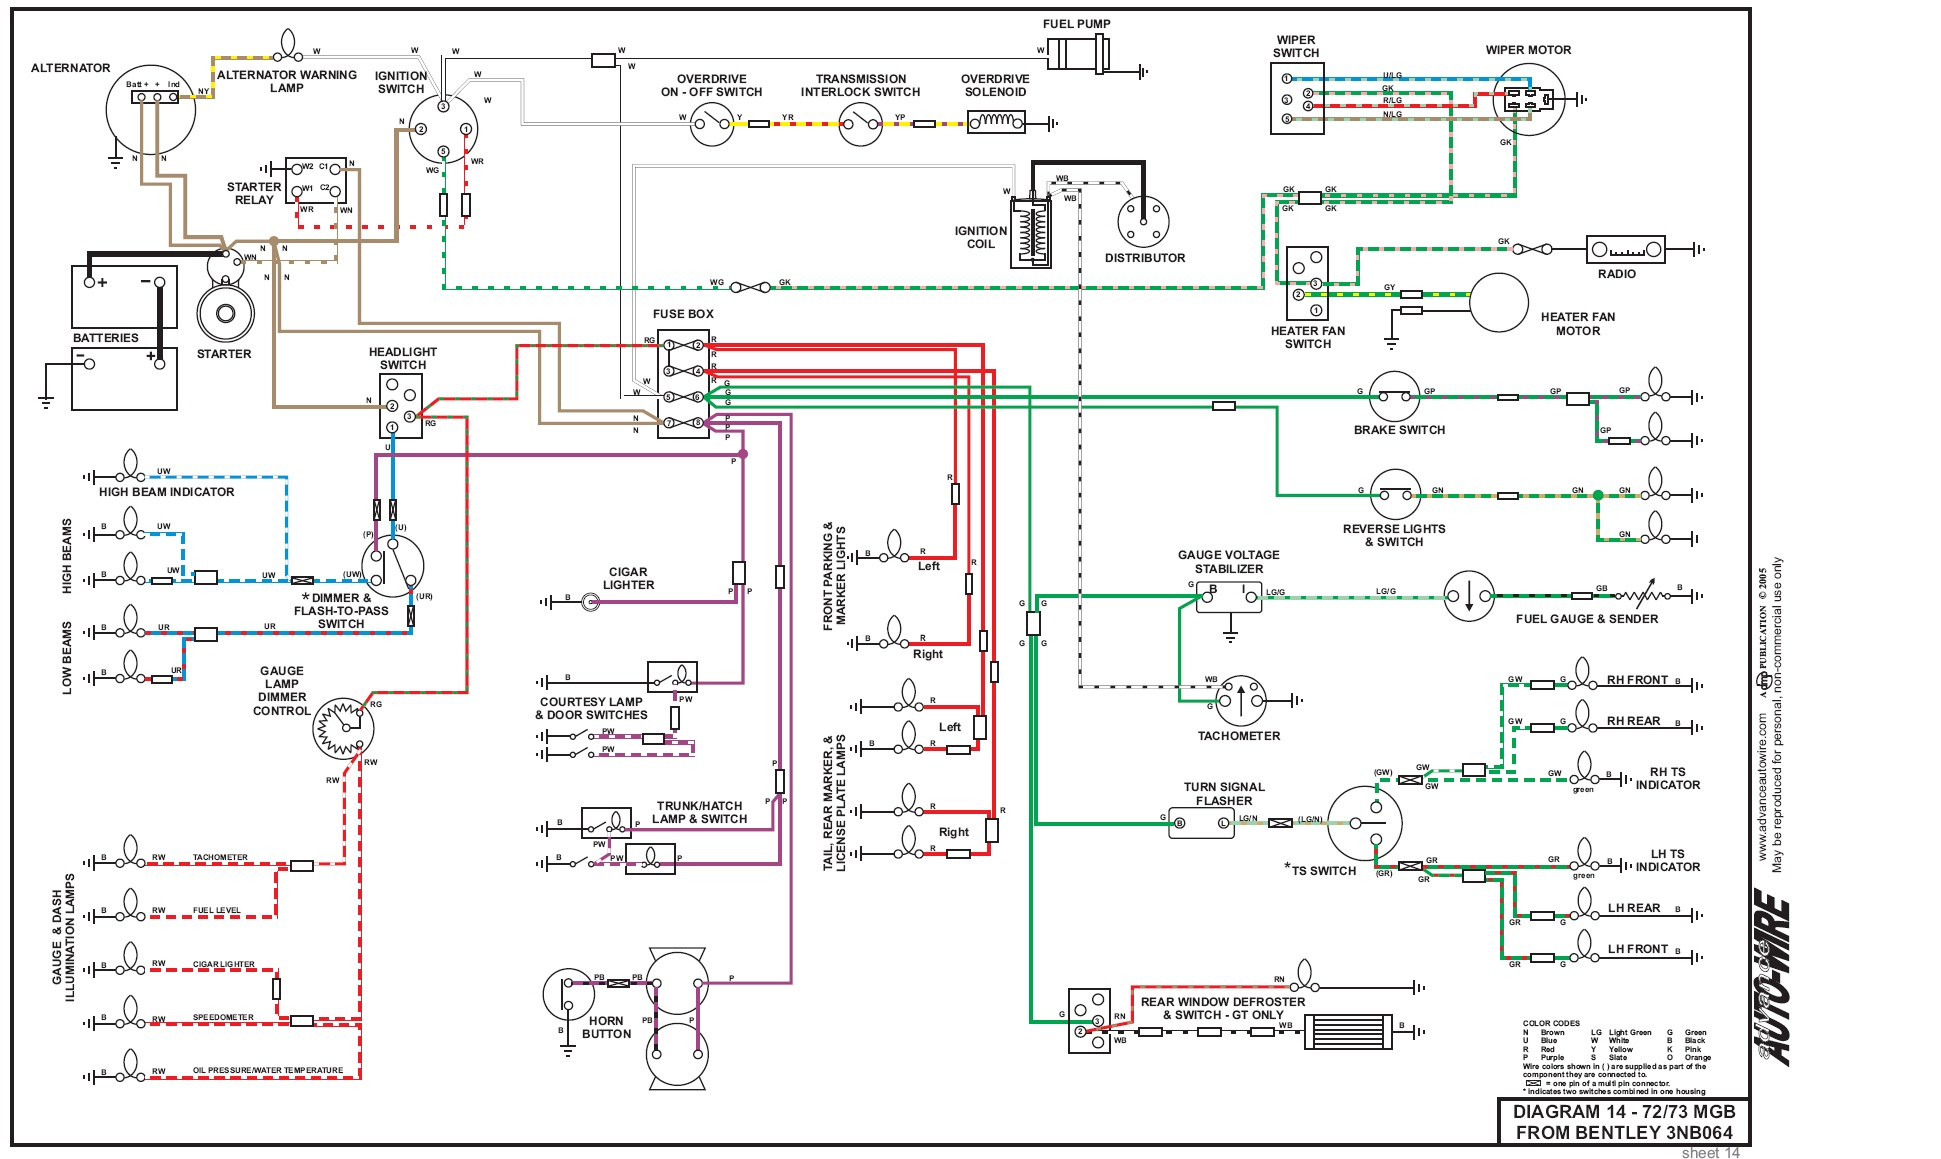 small resolution of pictures of the mgb alternator wiring harness wiring diagram inside 1974 mgb alternator wiring